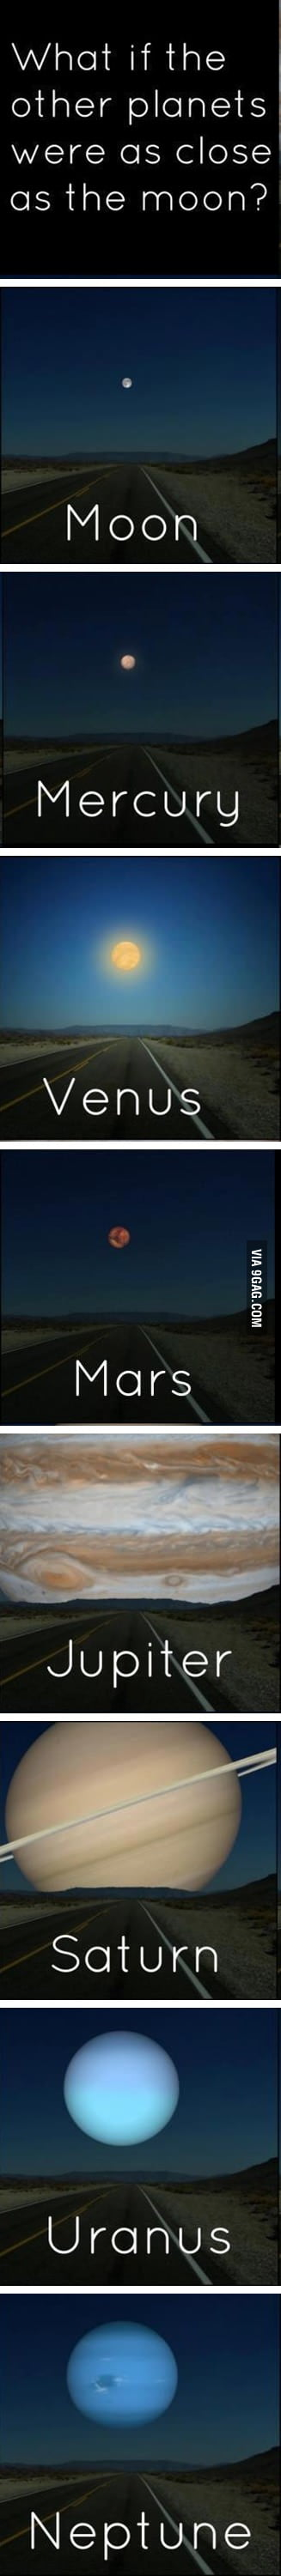 What if the other planets were as close as the moon